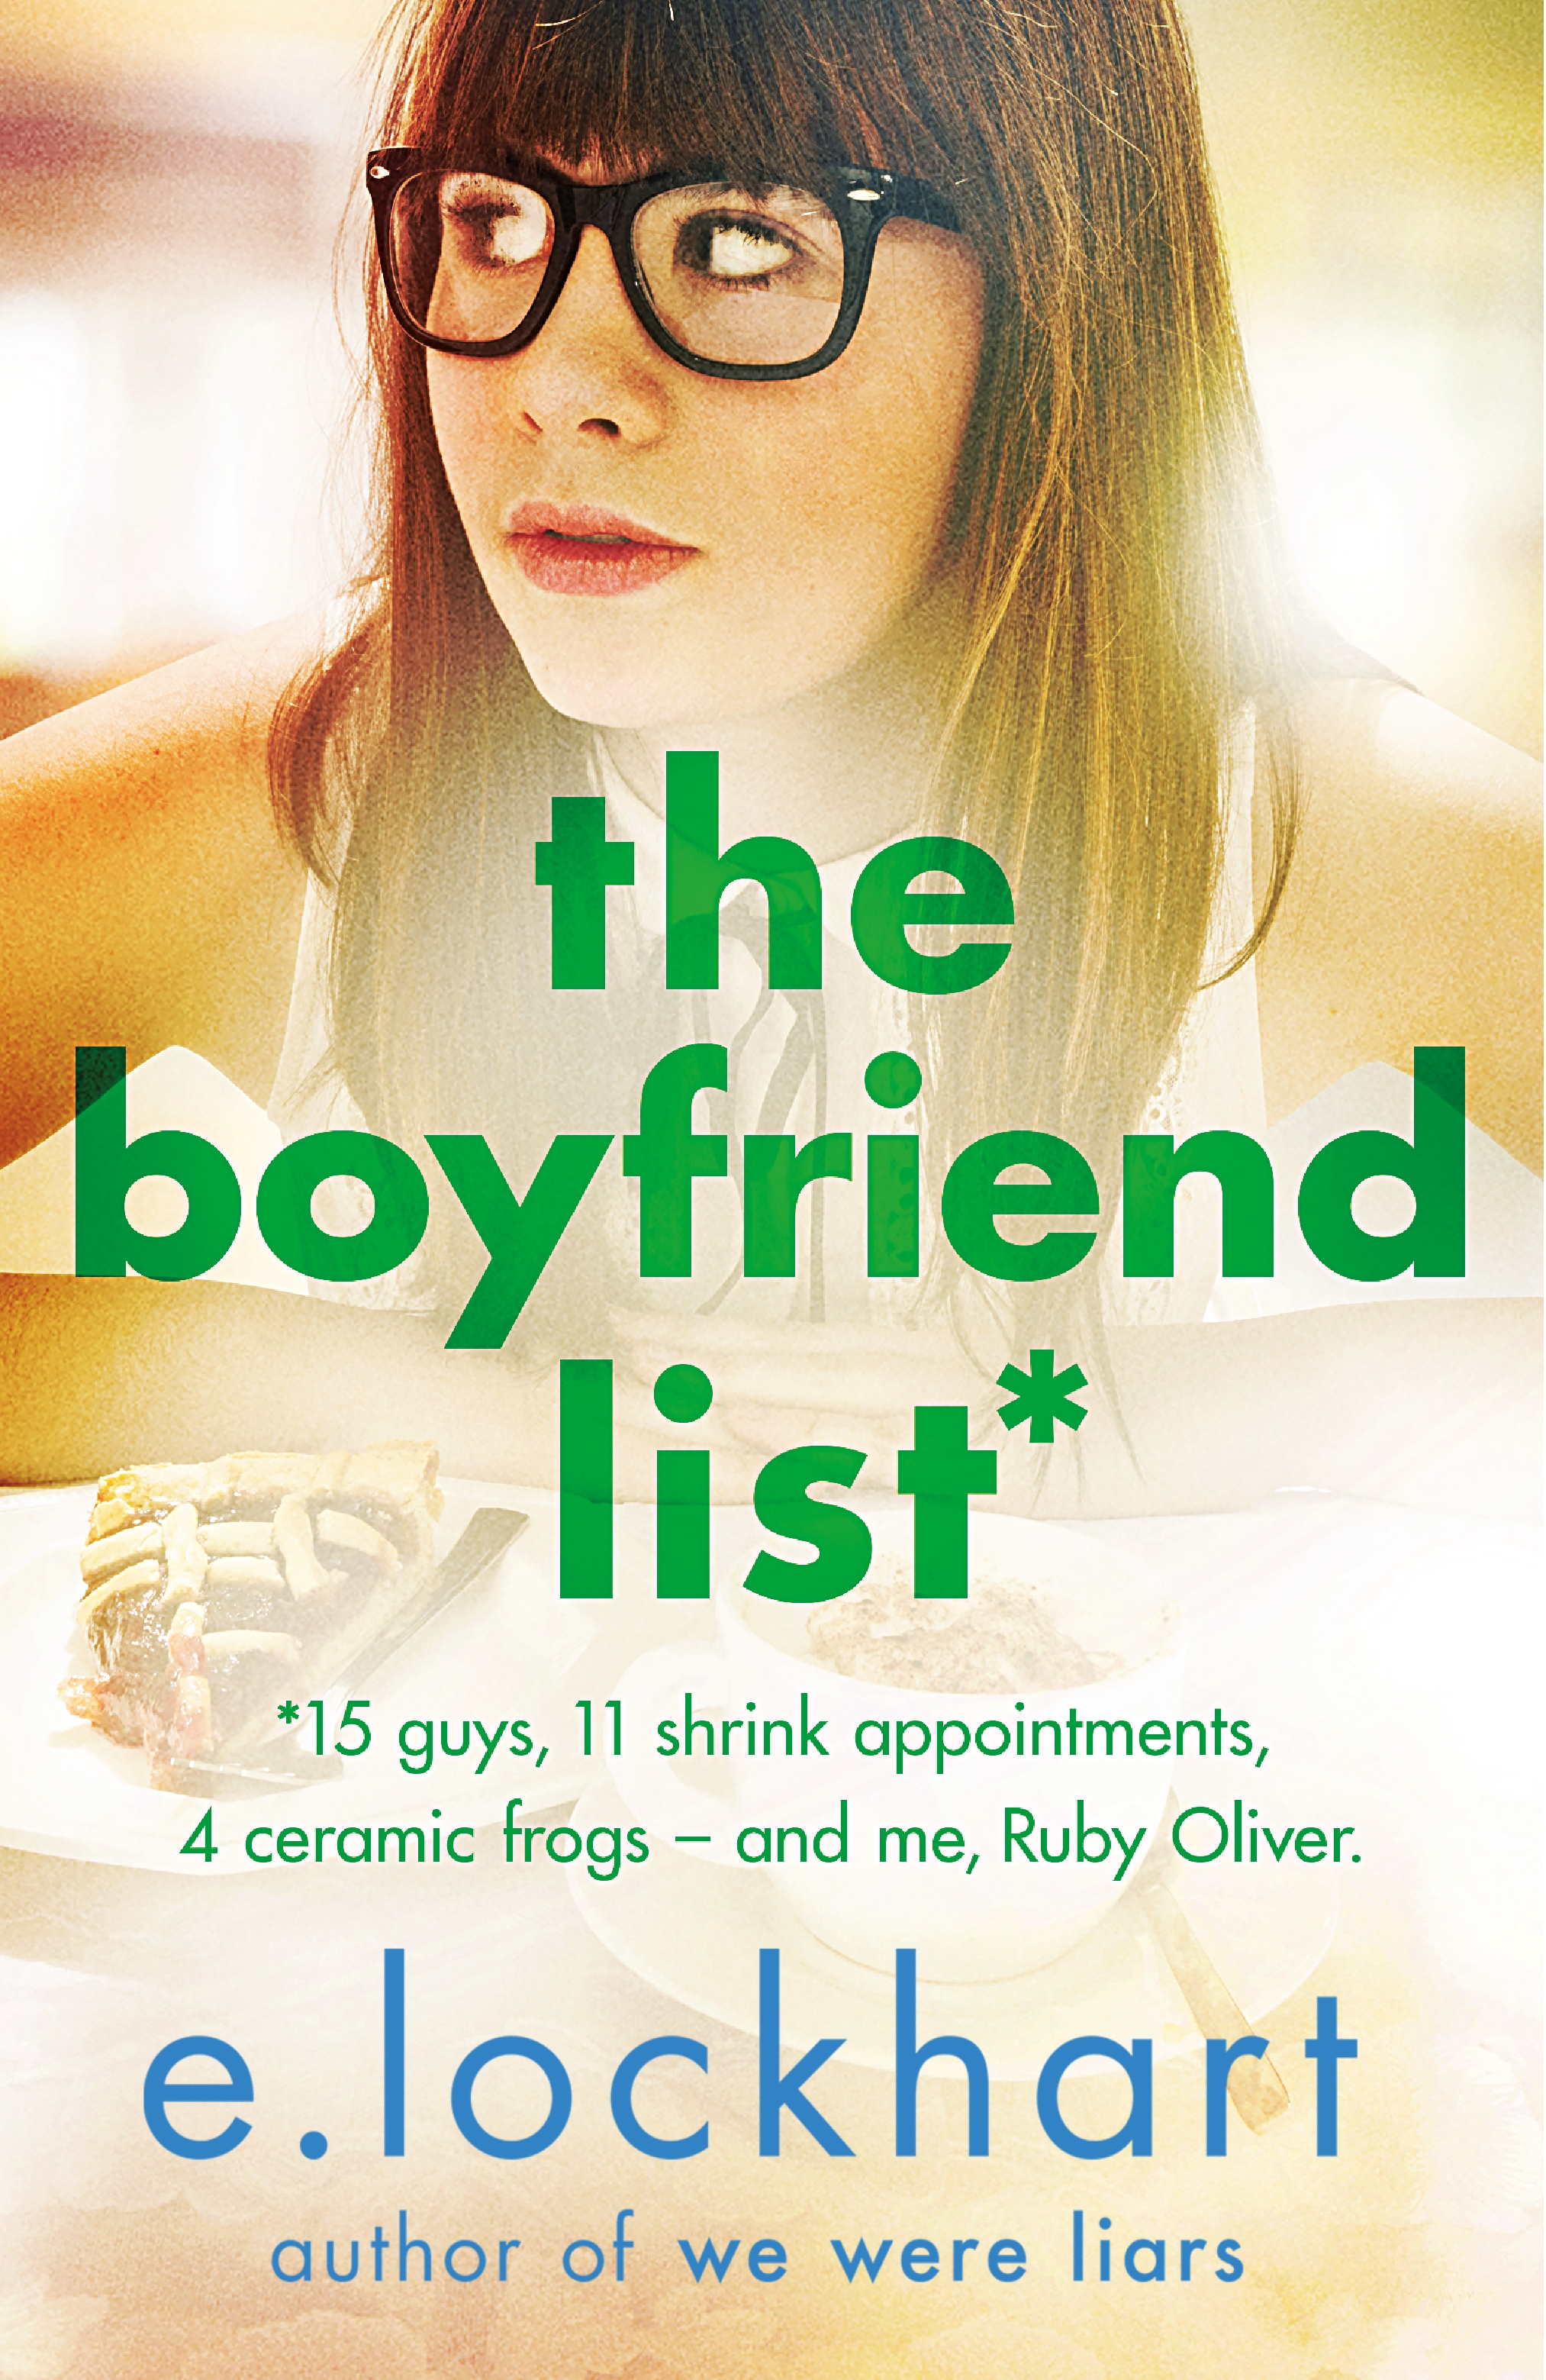 Ruby Oliver 1: The Boyfriend List by E. LockhartEmily Jenkins